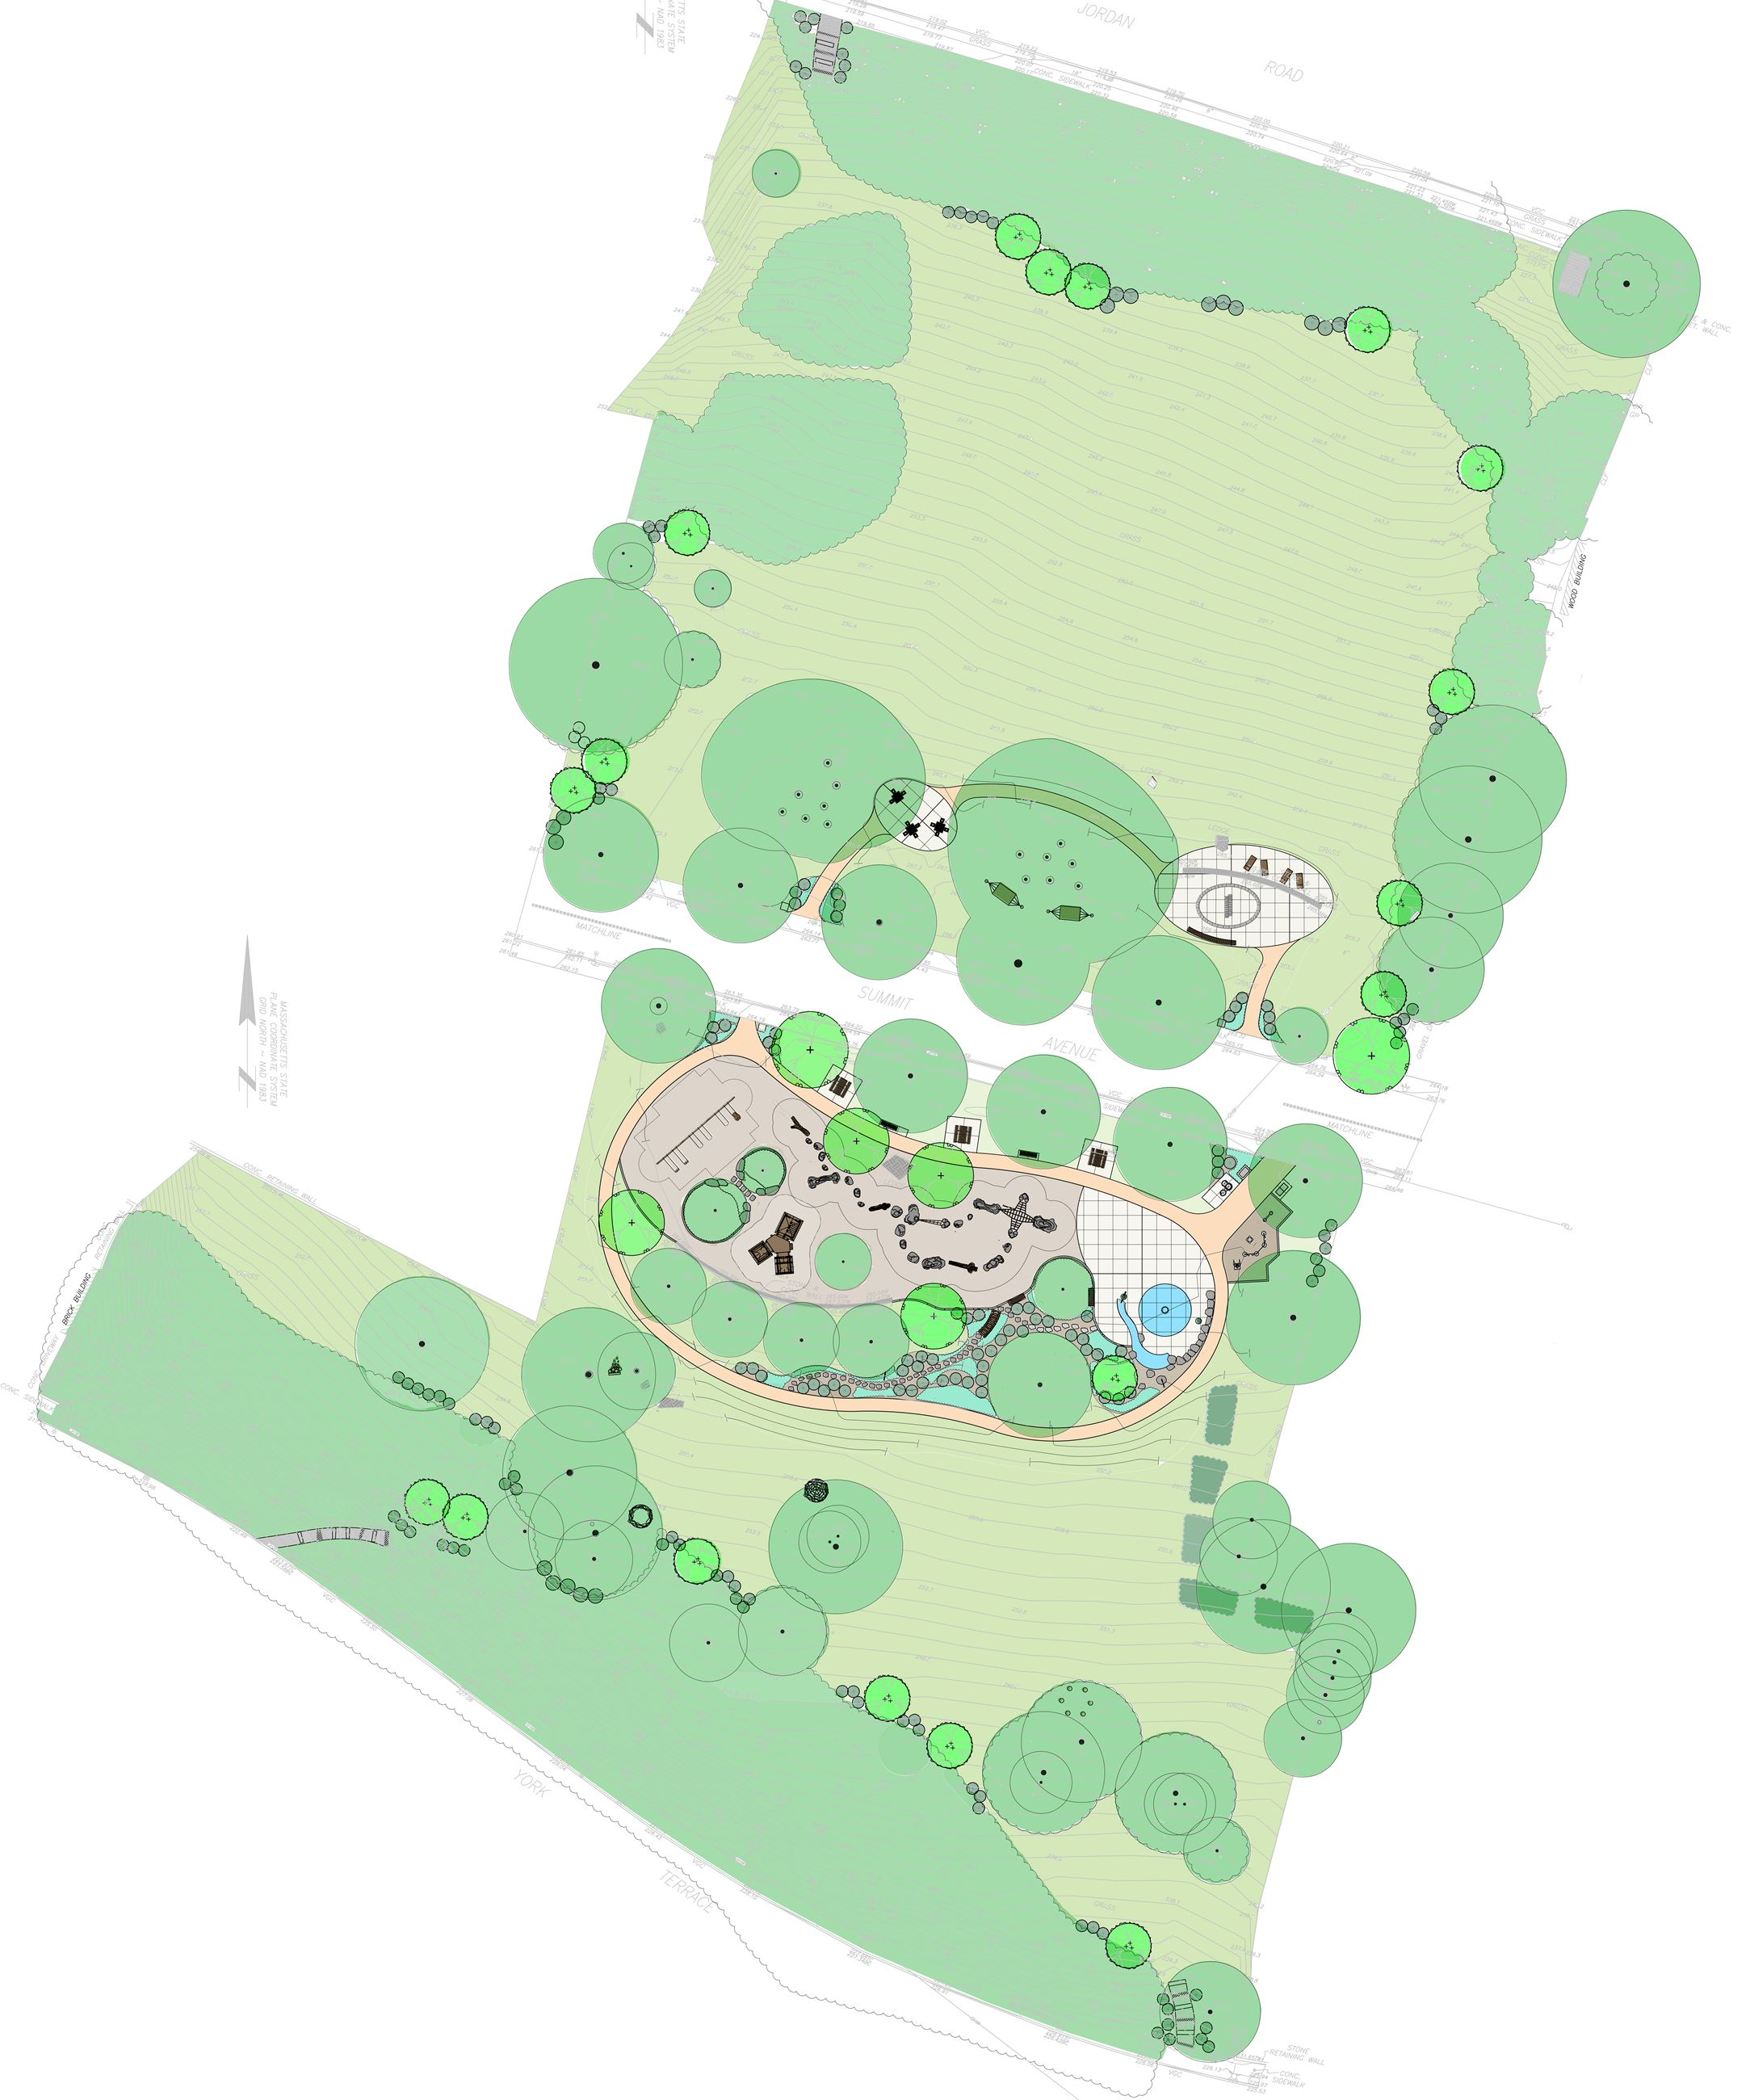 Christmas Hill Park Map.Corey Hill Playground Brookline Ma Official Website